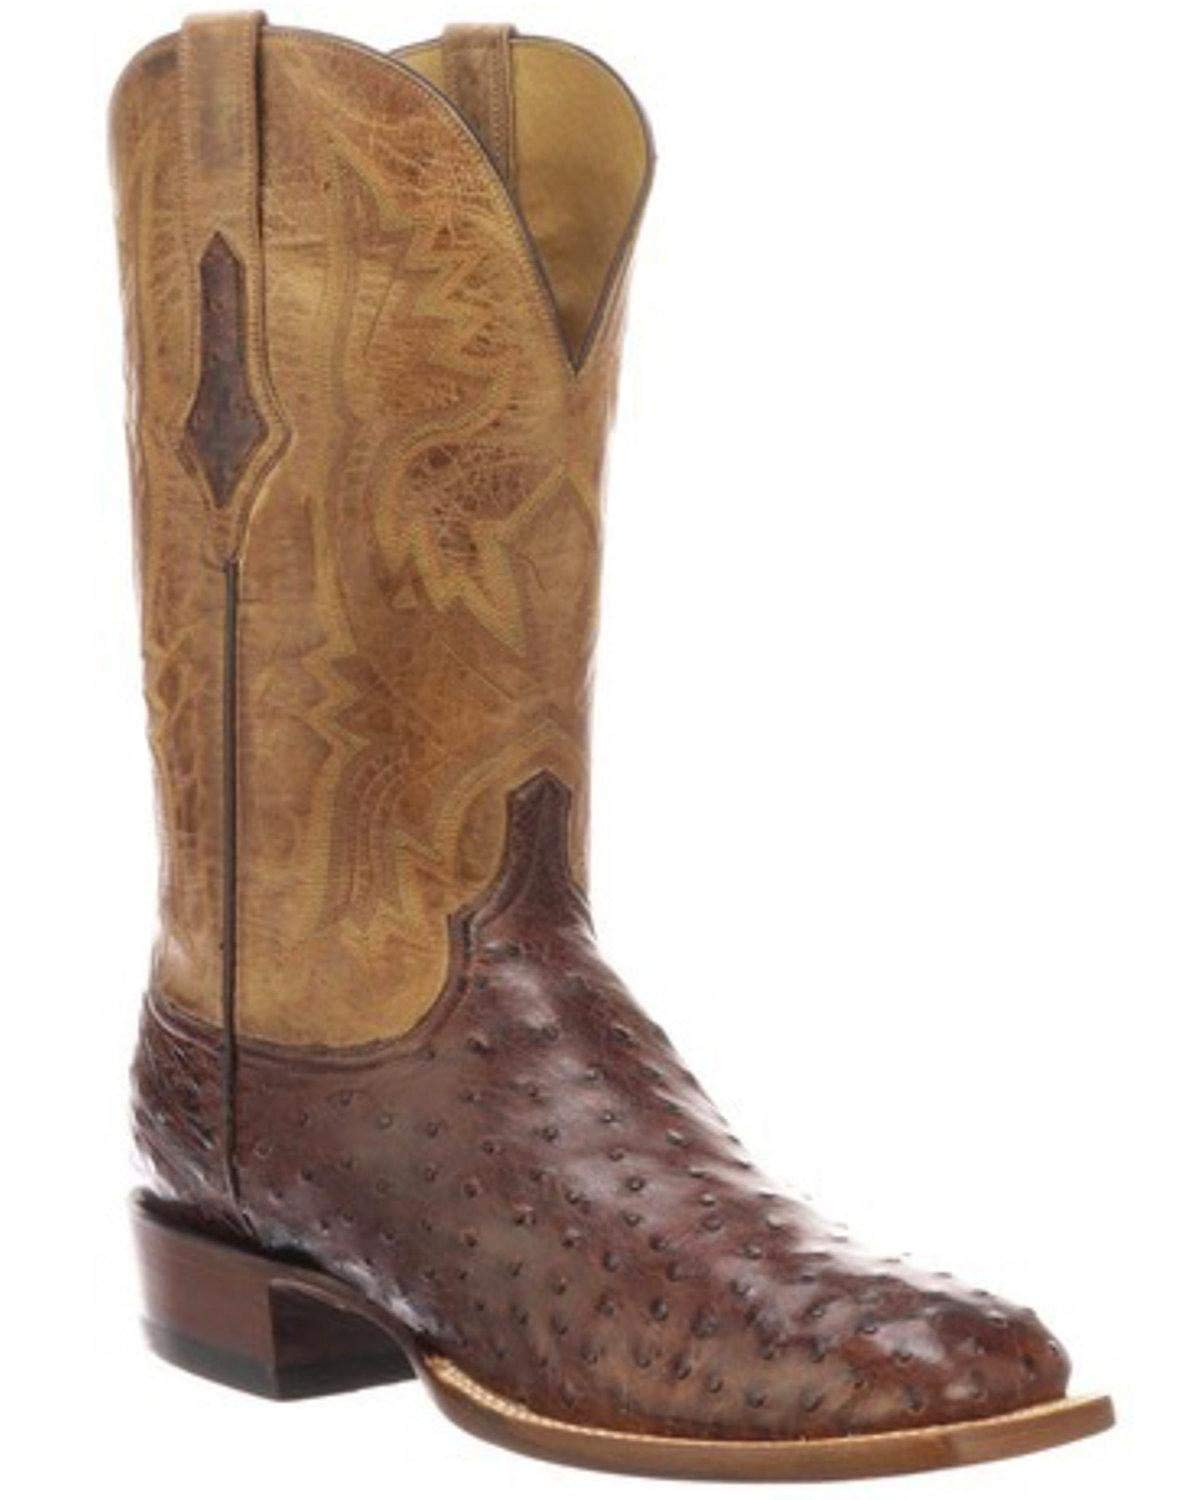 Lucchese Bootmaker Men's Cliff Western Boot, Antique Chocolate/Tan, 8 D US by Lucchese Bootmaker